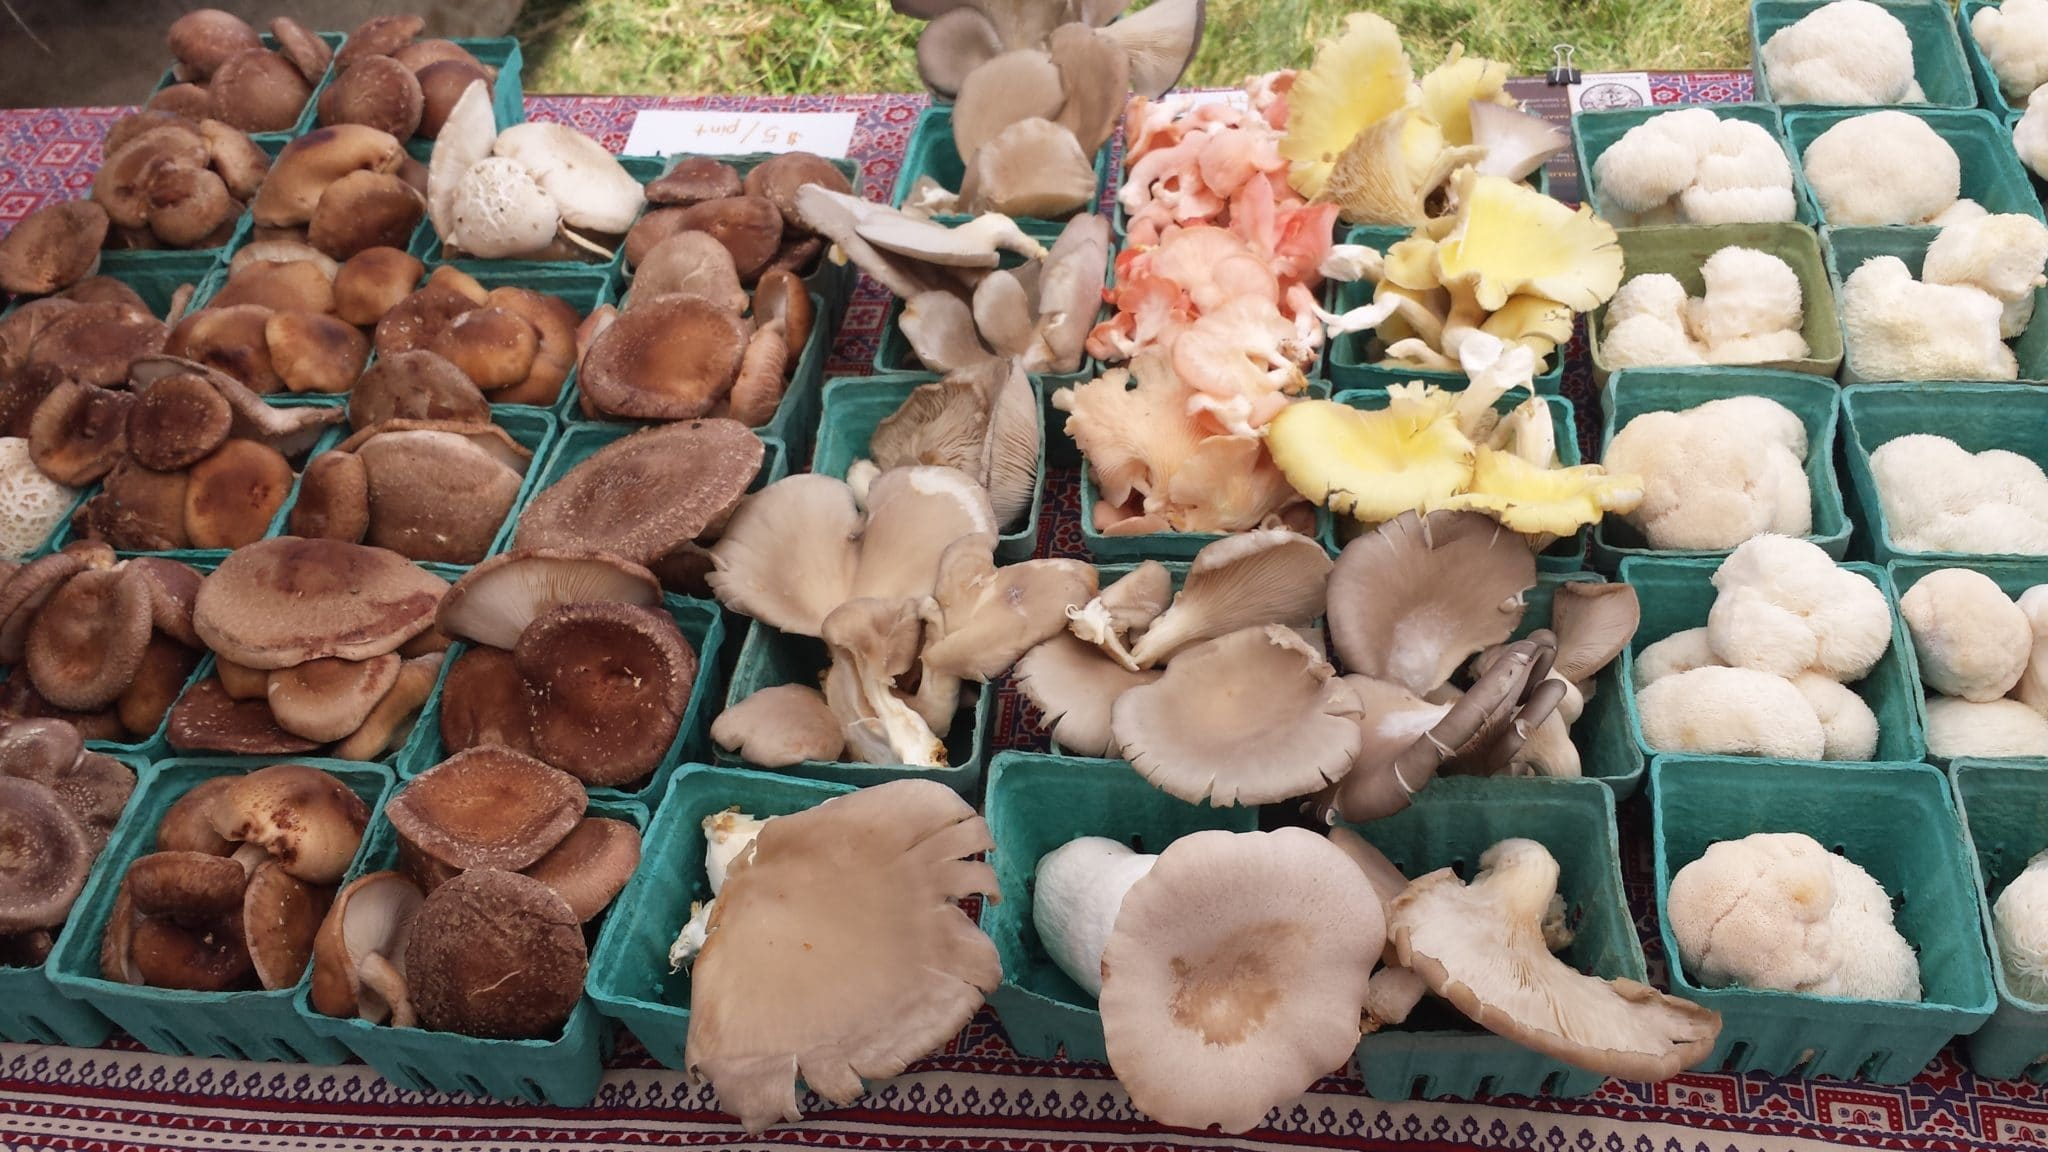 Mushrooms at Farmers Market (photo credit: Willie Crosby, Fungi Ally)